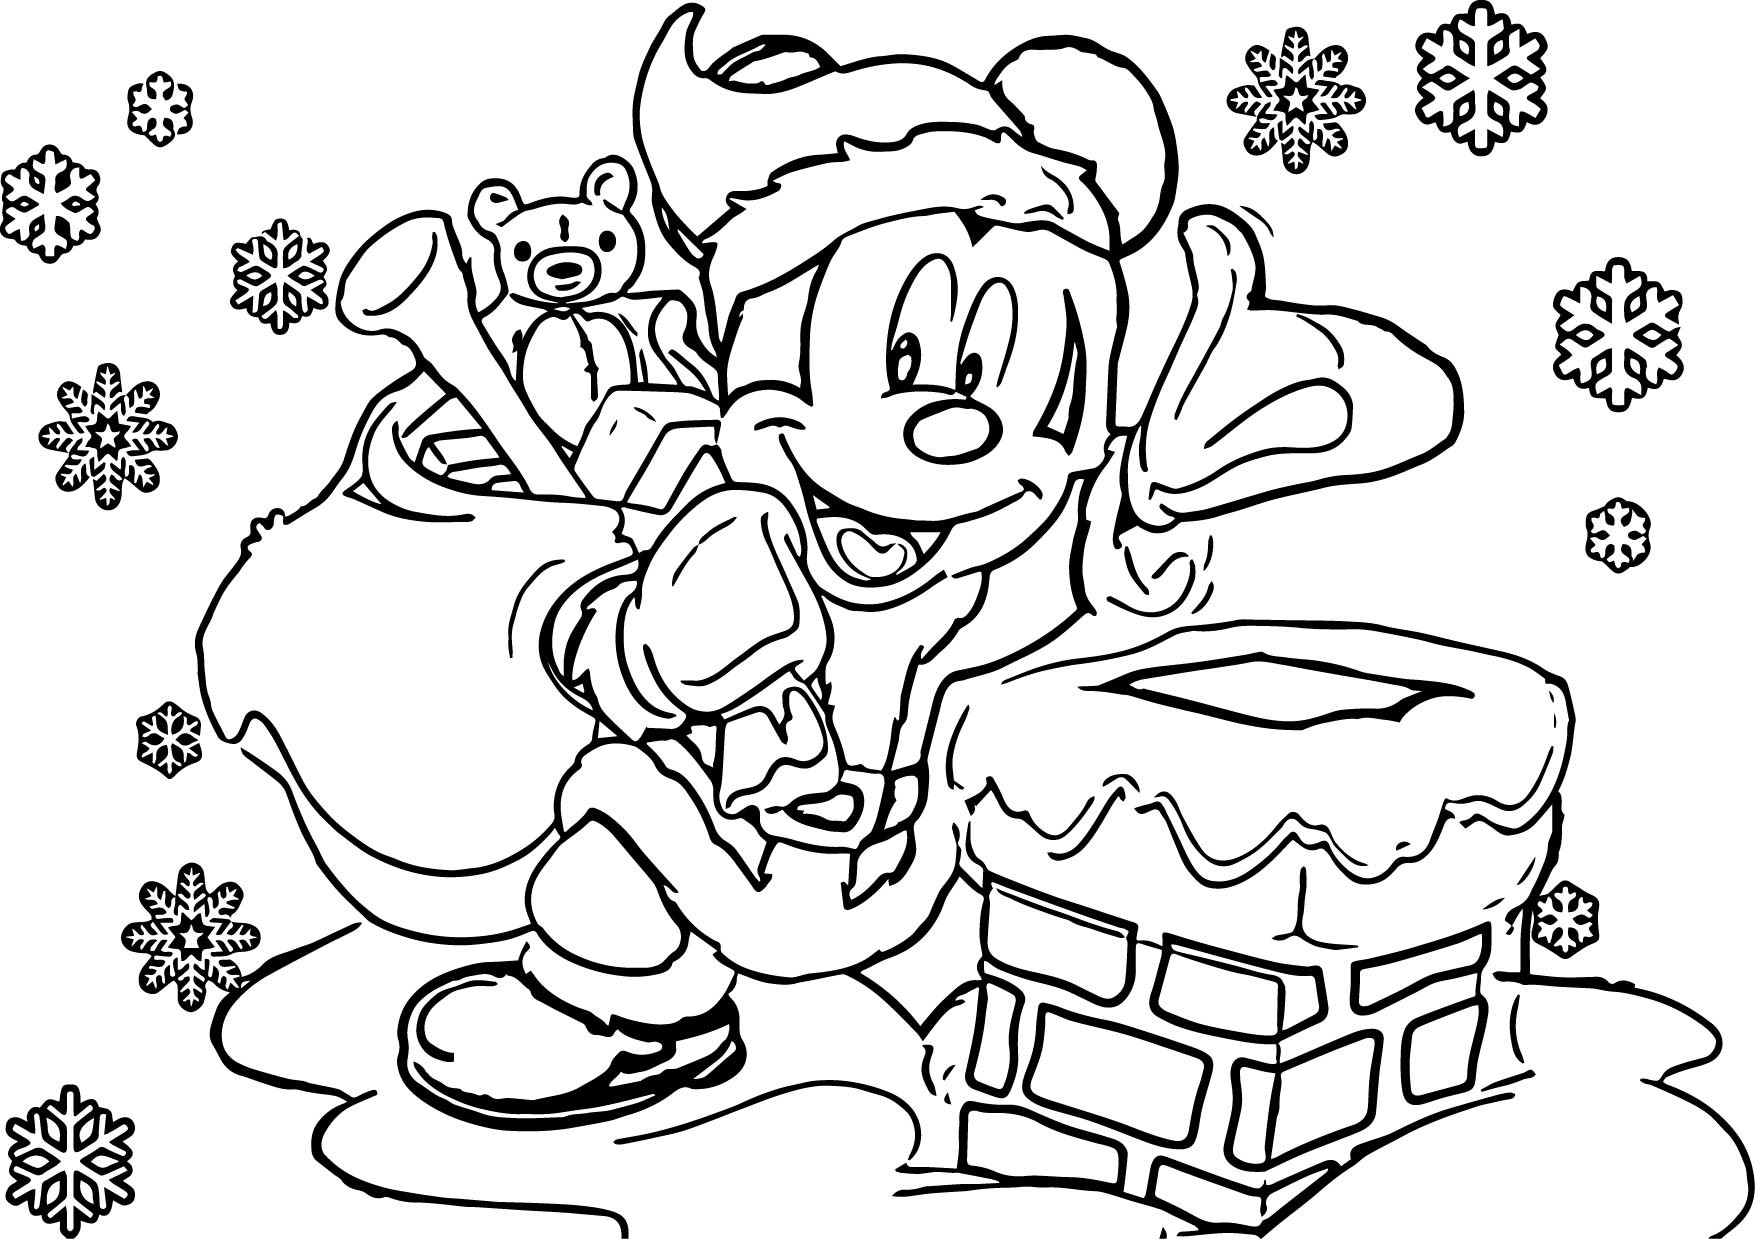 Christmas Coloring Pages For Upper Elementary With Archives Bravica Co